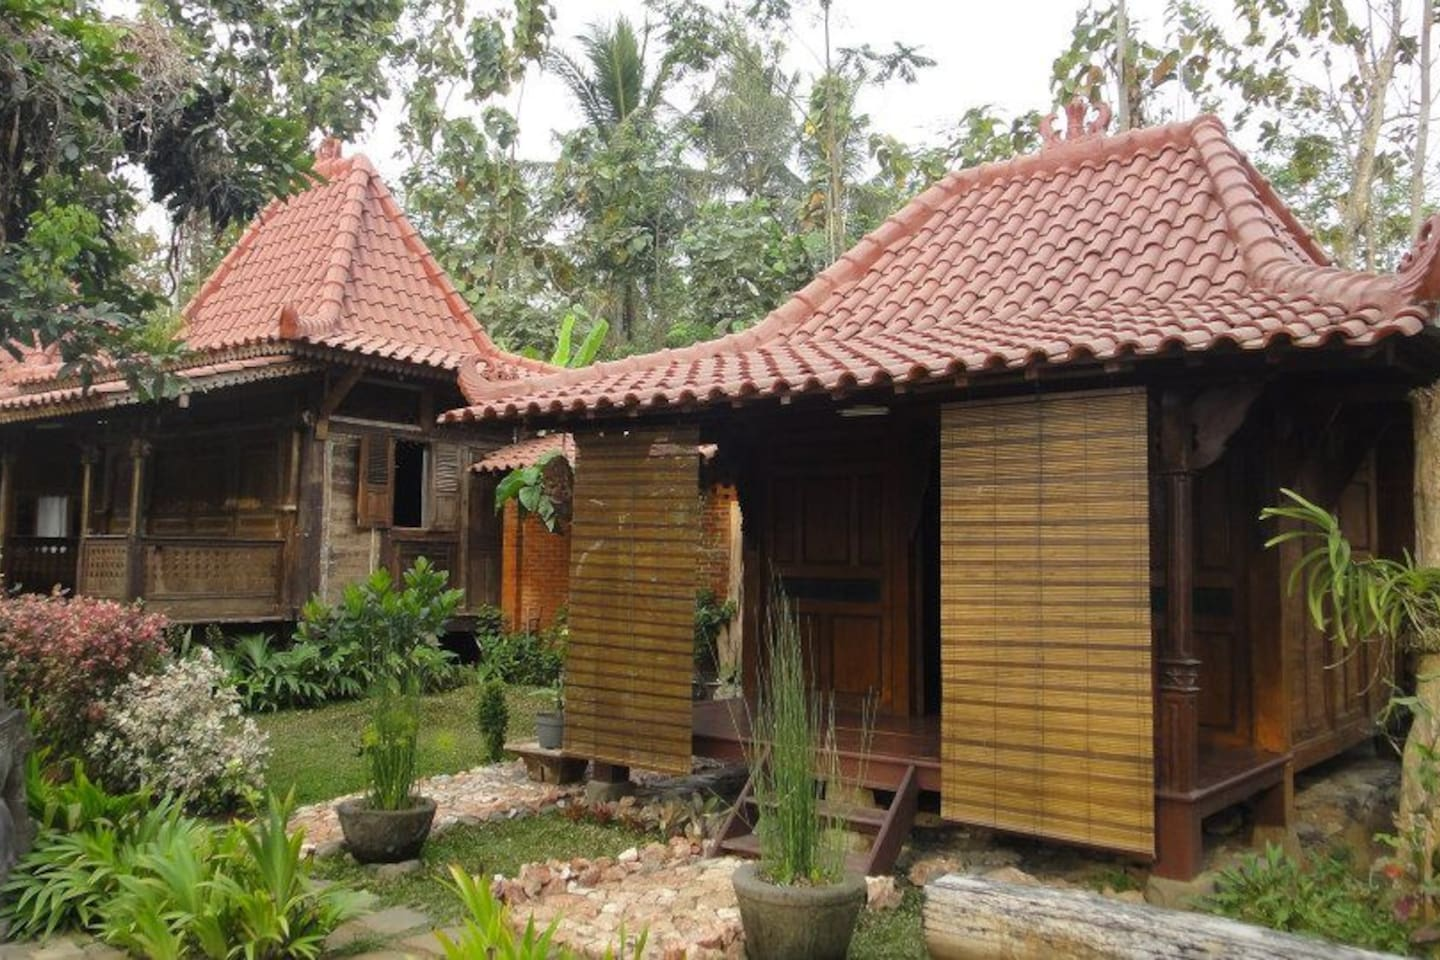 This is the house or bungalow look like. Indonesian traditional house. (Joglo style)